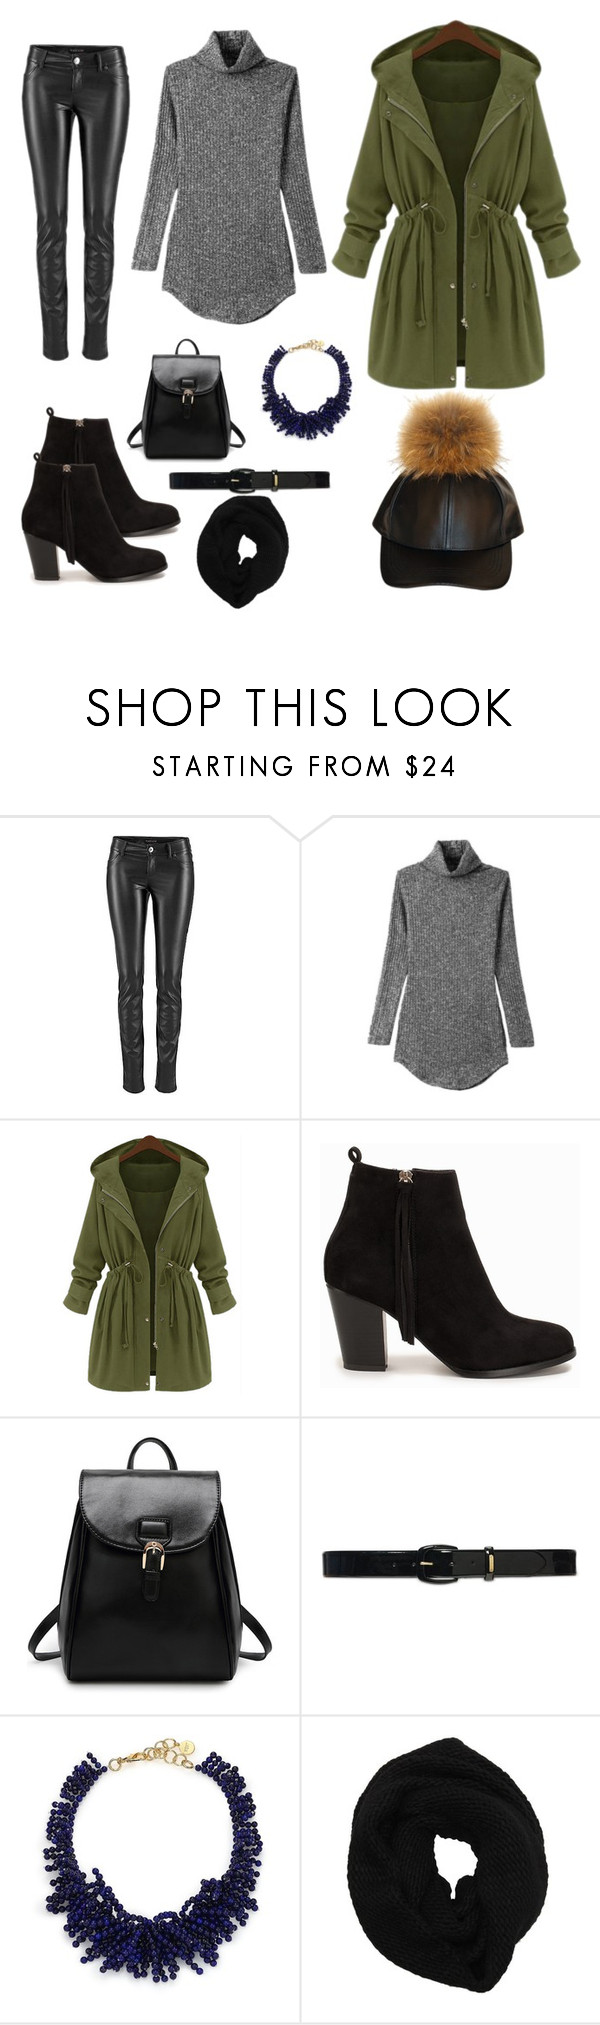 """""""Happy Thursday"""" by x3theresax3 on Polyvore featuring Nly Shoes, Lauren Ralph Lauren, Nest and Wyatt"""